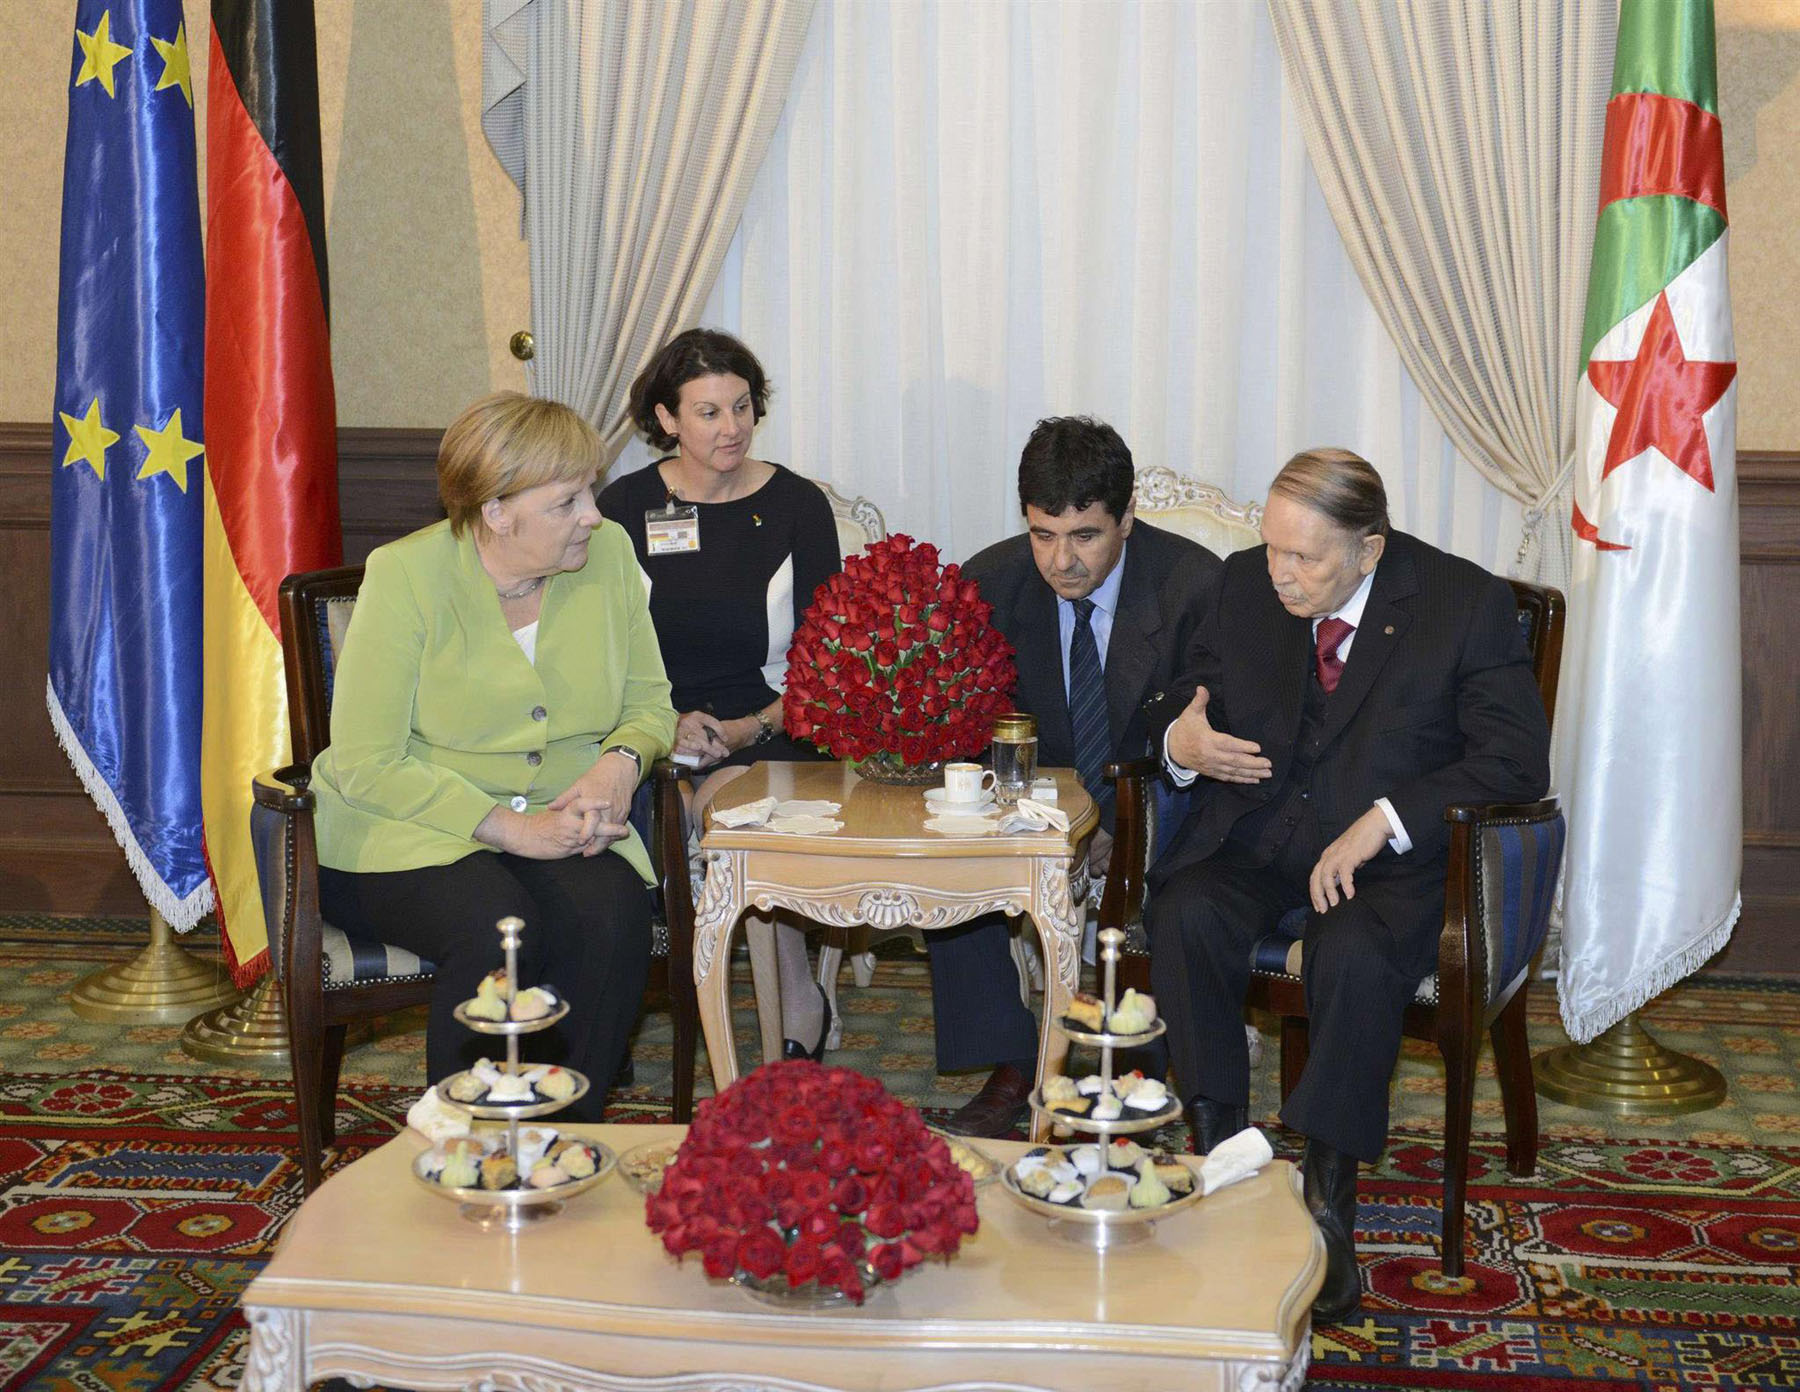 Algerian President Abdelaziz Bouteflika (R) meets with visiting German Chancellor Angela Merkel in Algiers, on September 17. (Algerian Presidential Palace)